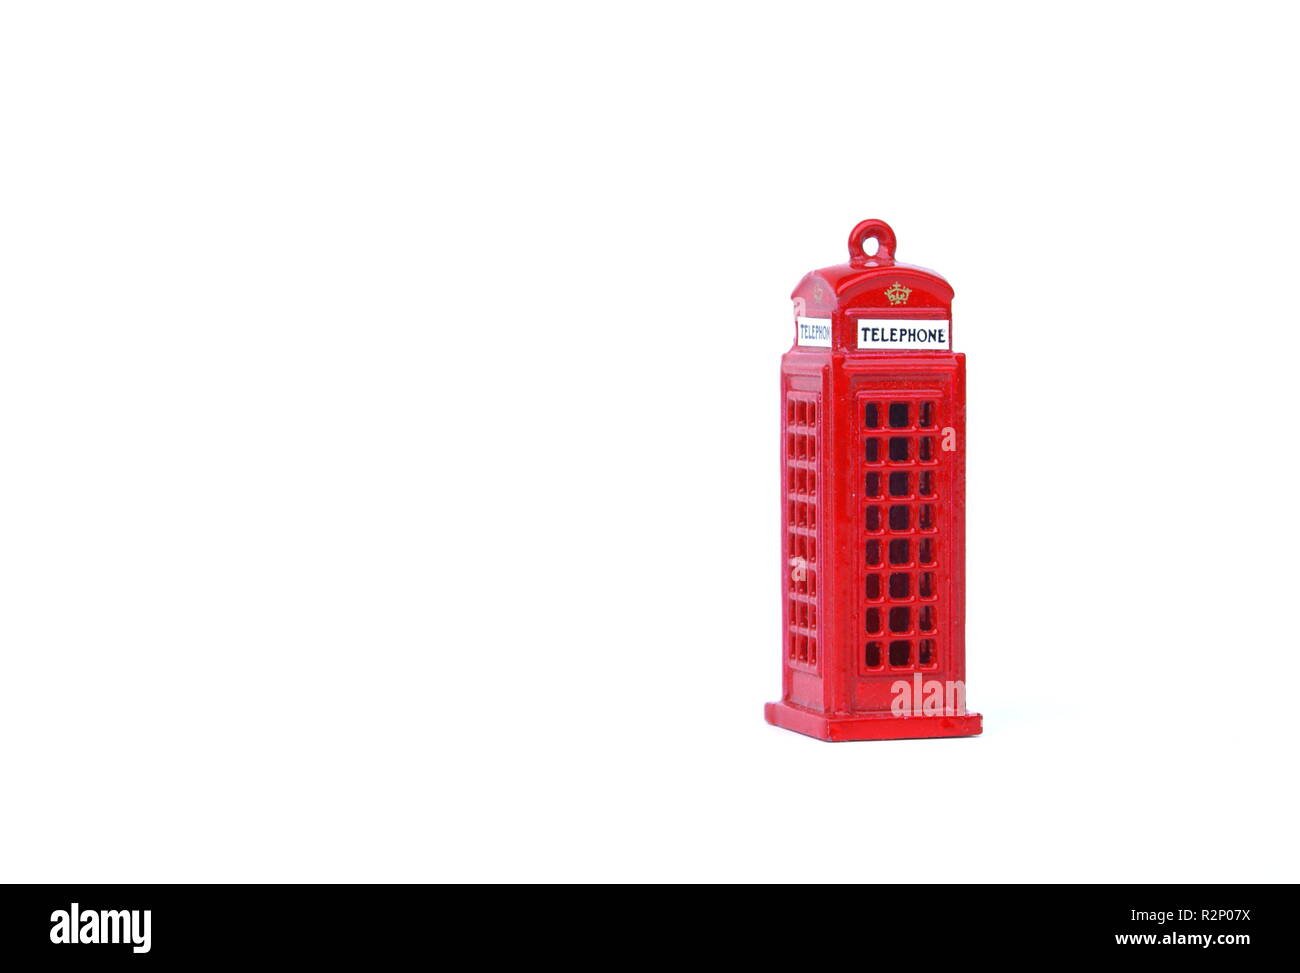 phone booth - Stock Image